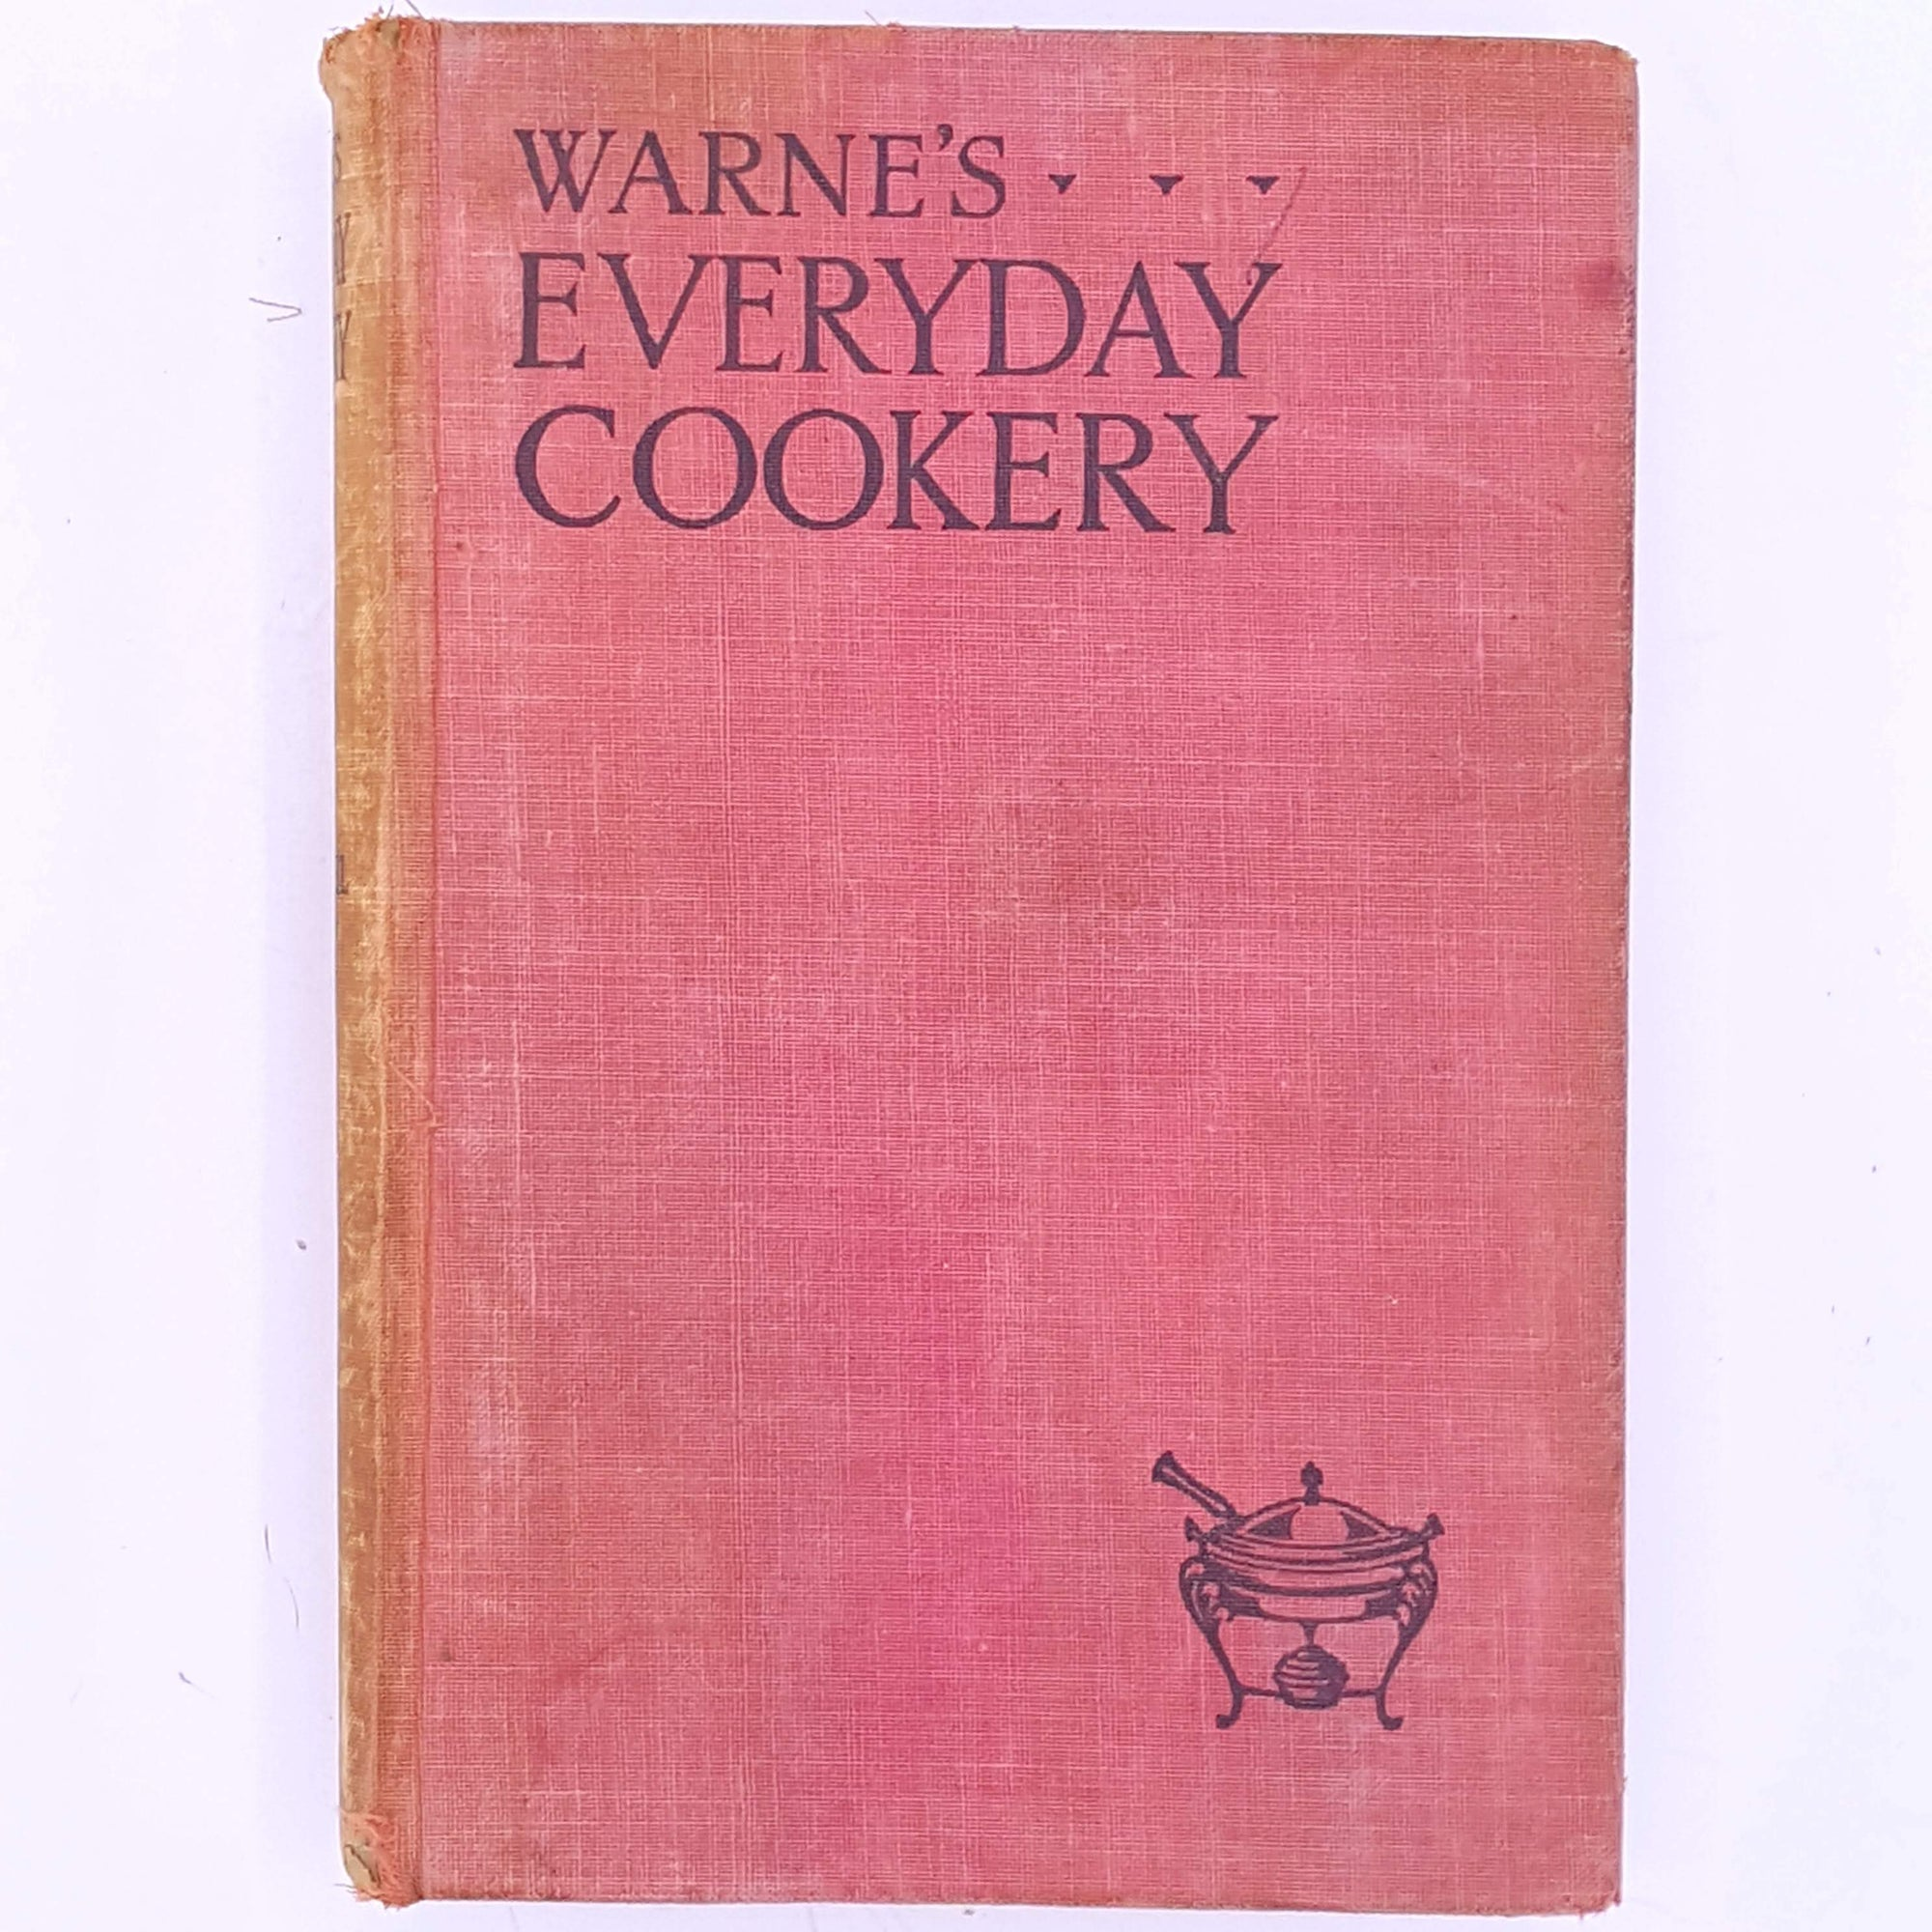 Warne's Everyday Cookery. Mrs Mabel Wijey, 1937